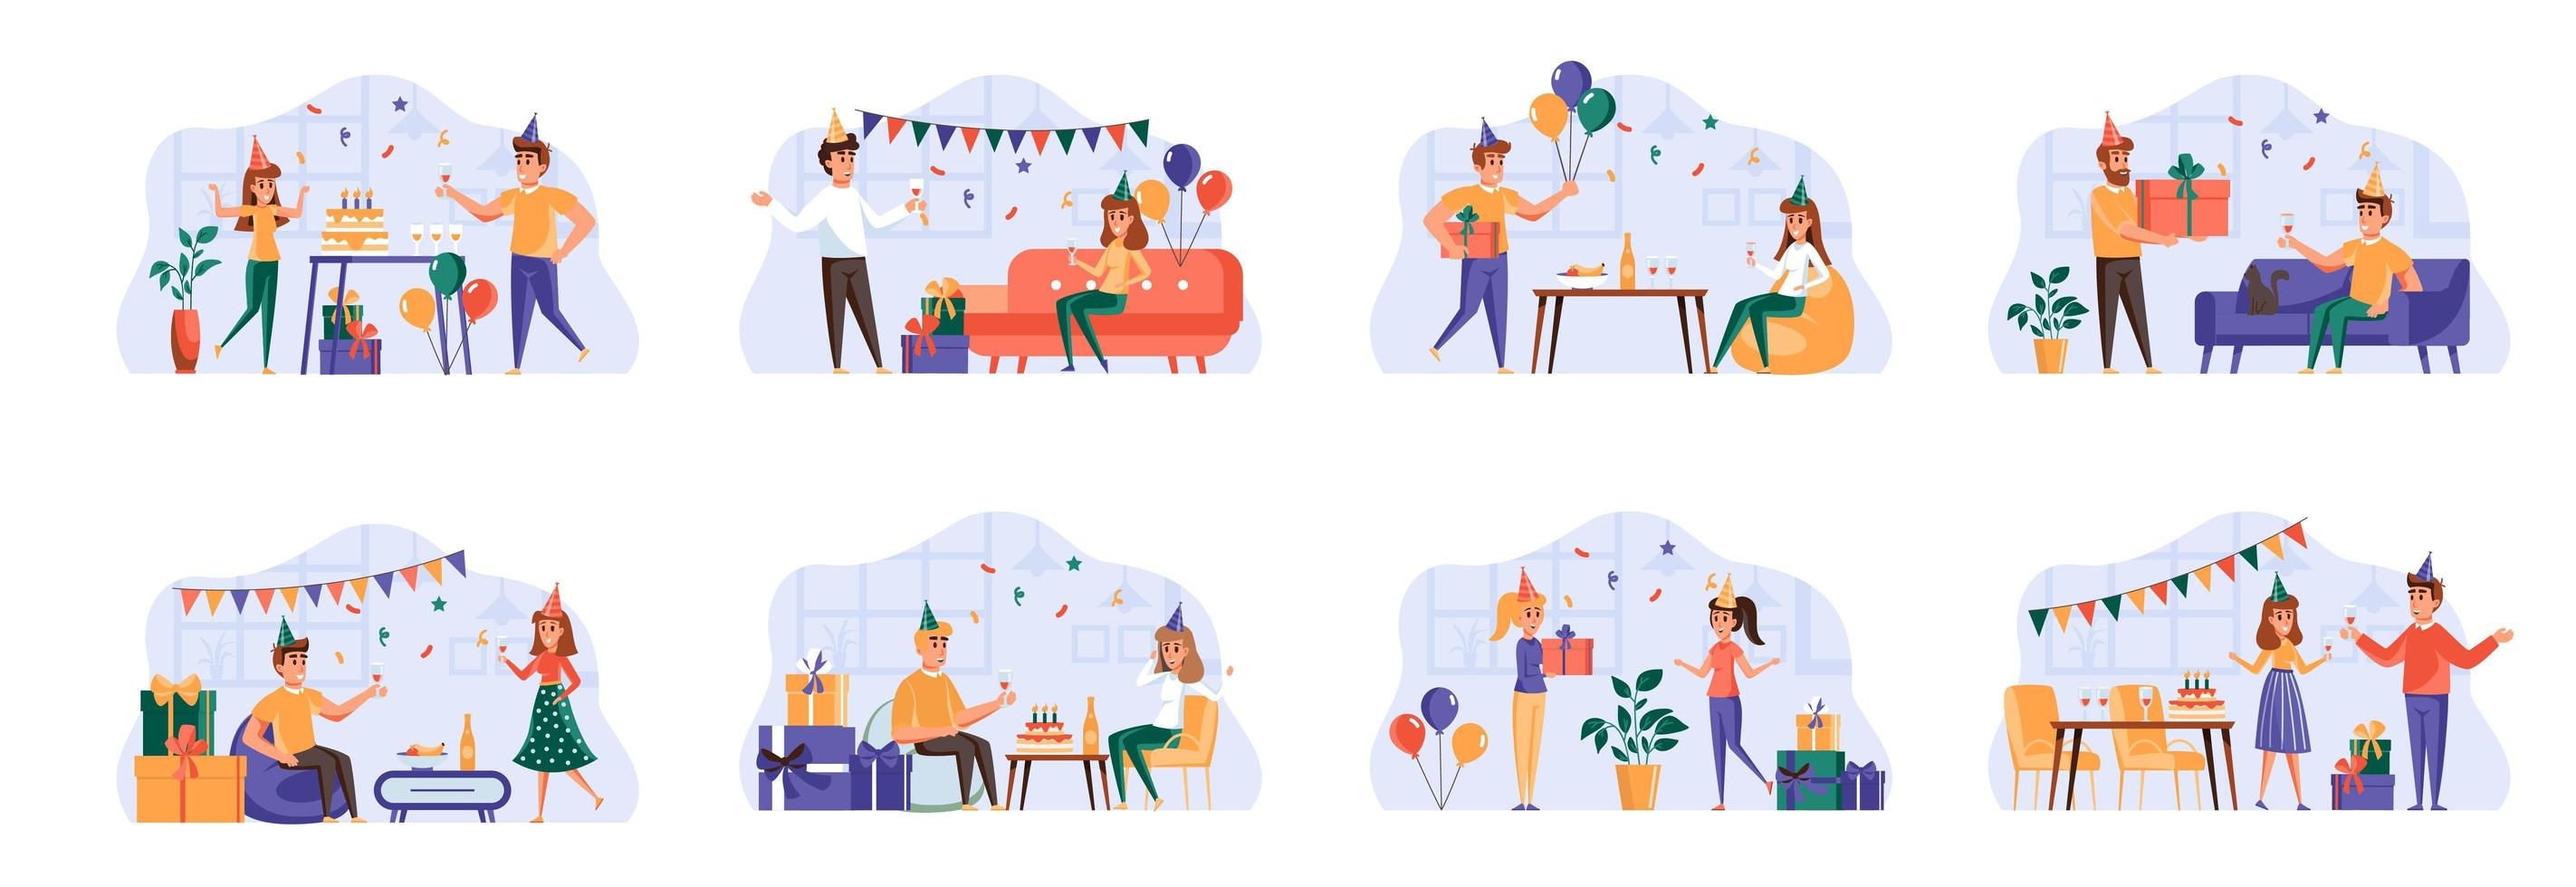 Party scenes bundle with people characters. vector